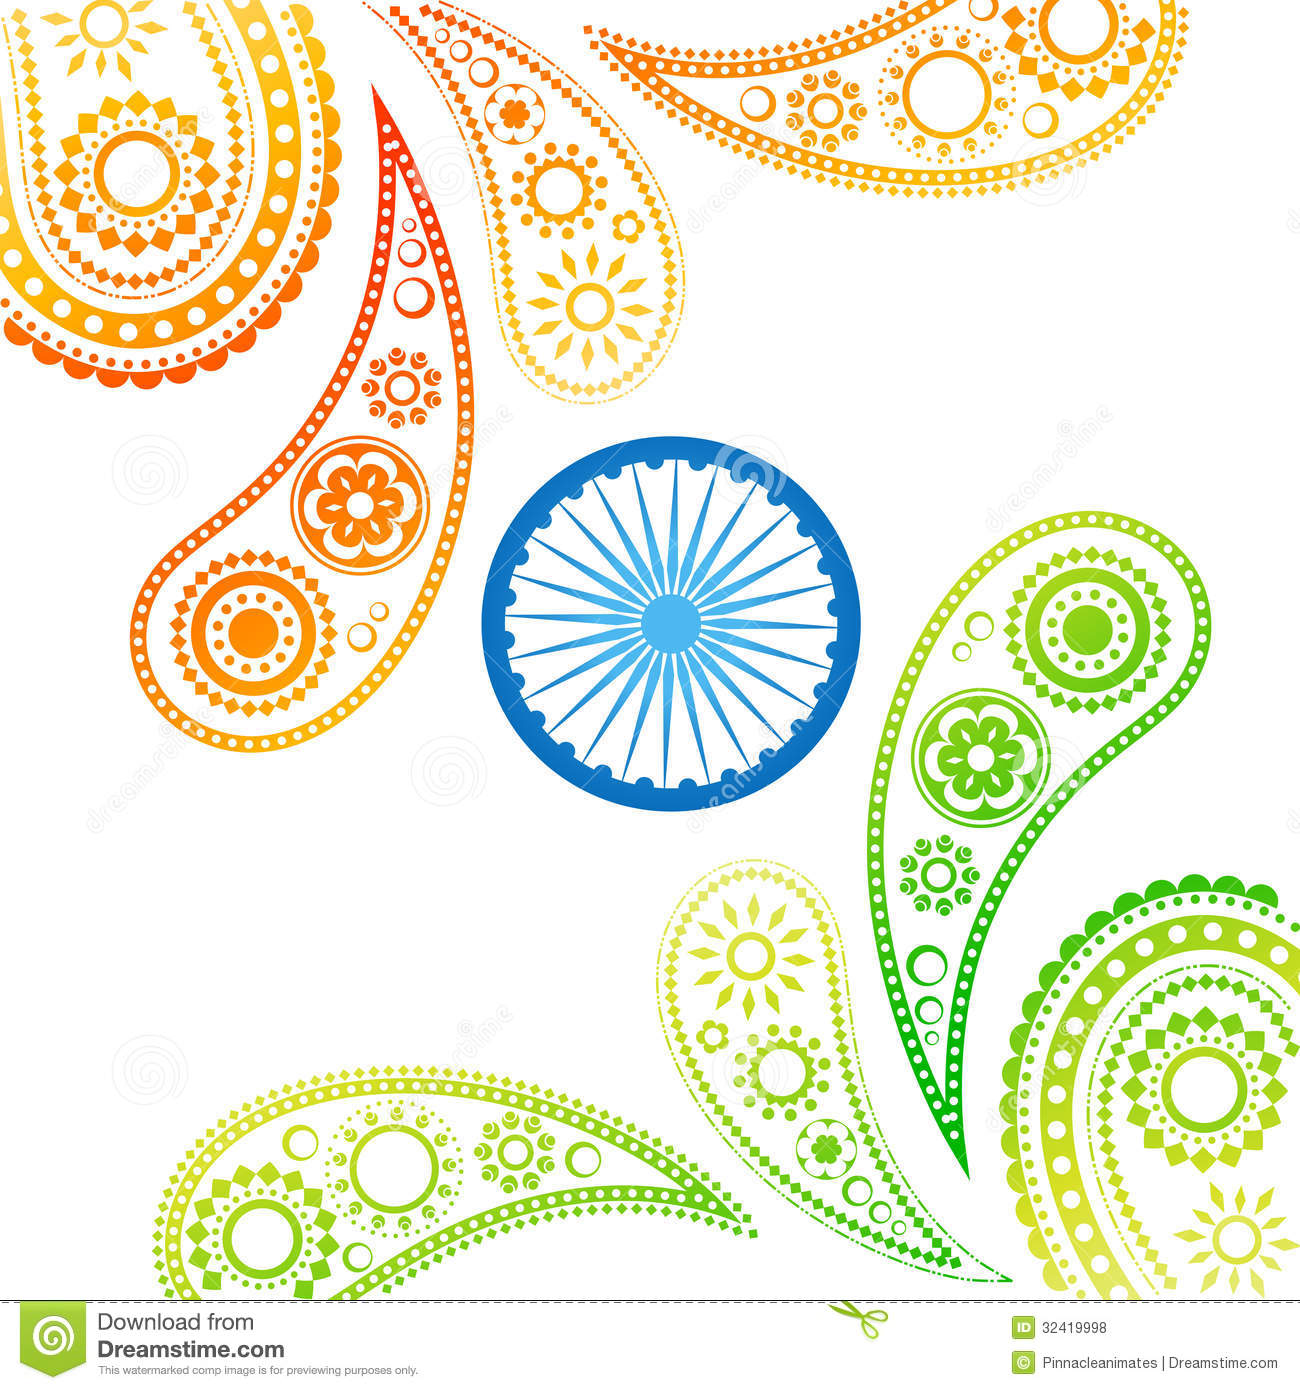 My Indian Dream Indiaheart Know The National Symbols Of India